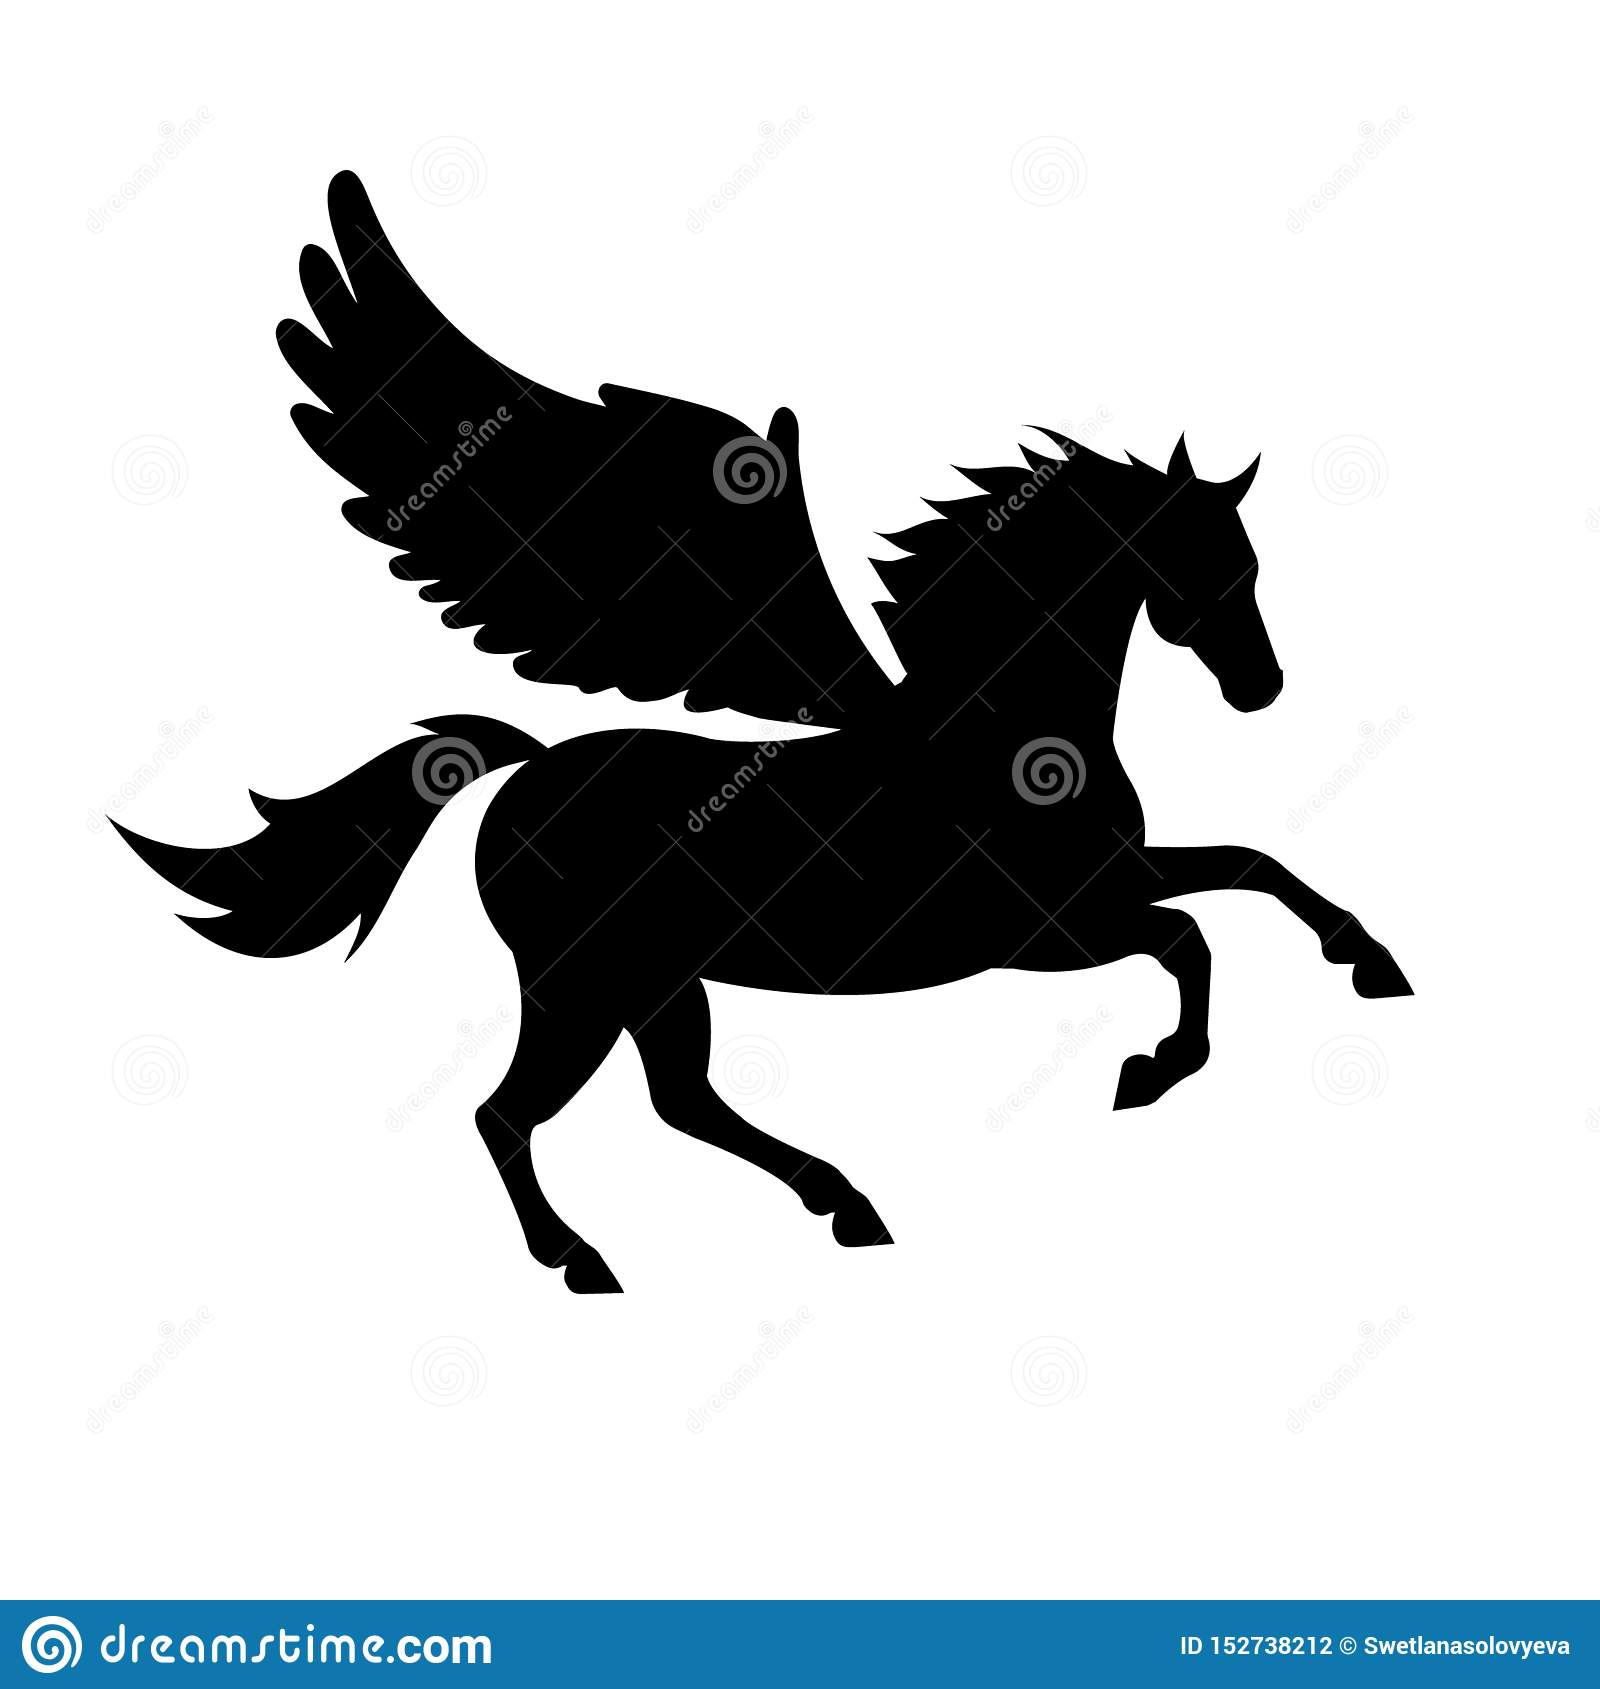 Vector Silhouette Of Pegasus Horse With Wings Stock Vector Illustration Of Power Mythology 152738212